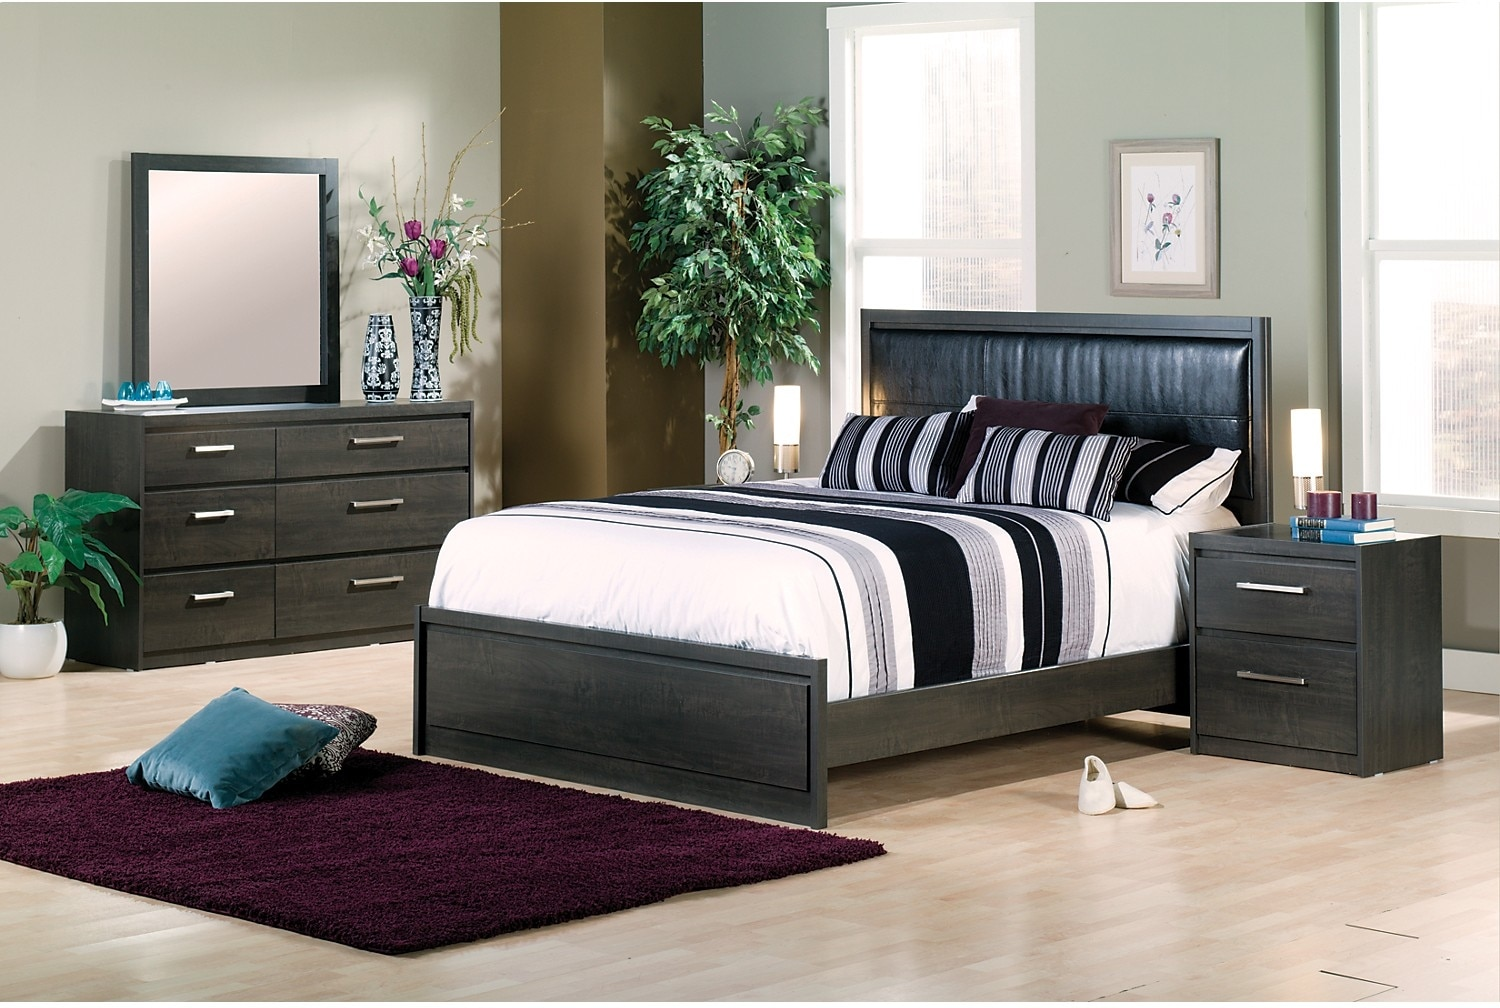 Bedroom Furniture - Lydney 5-Piece Queen Bedroom Package